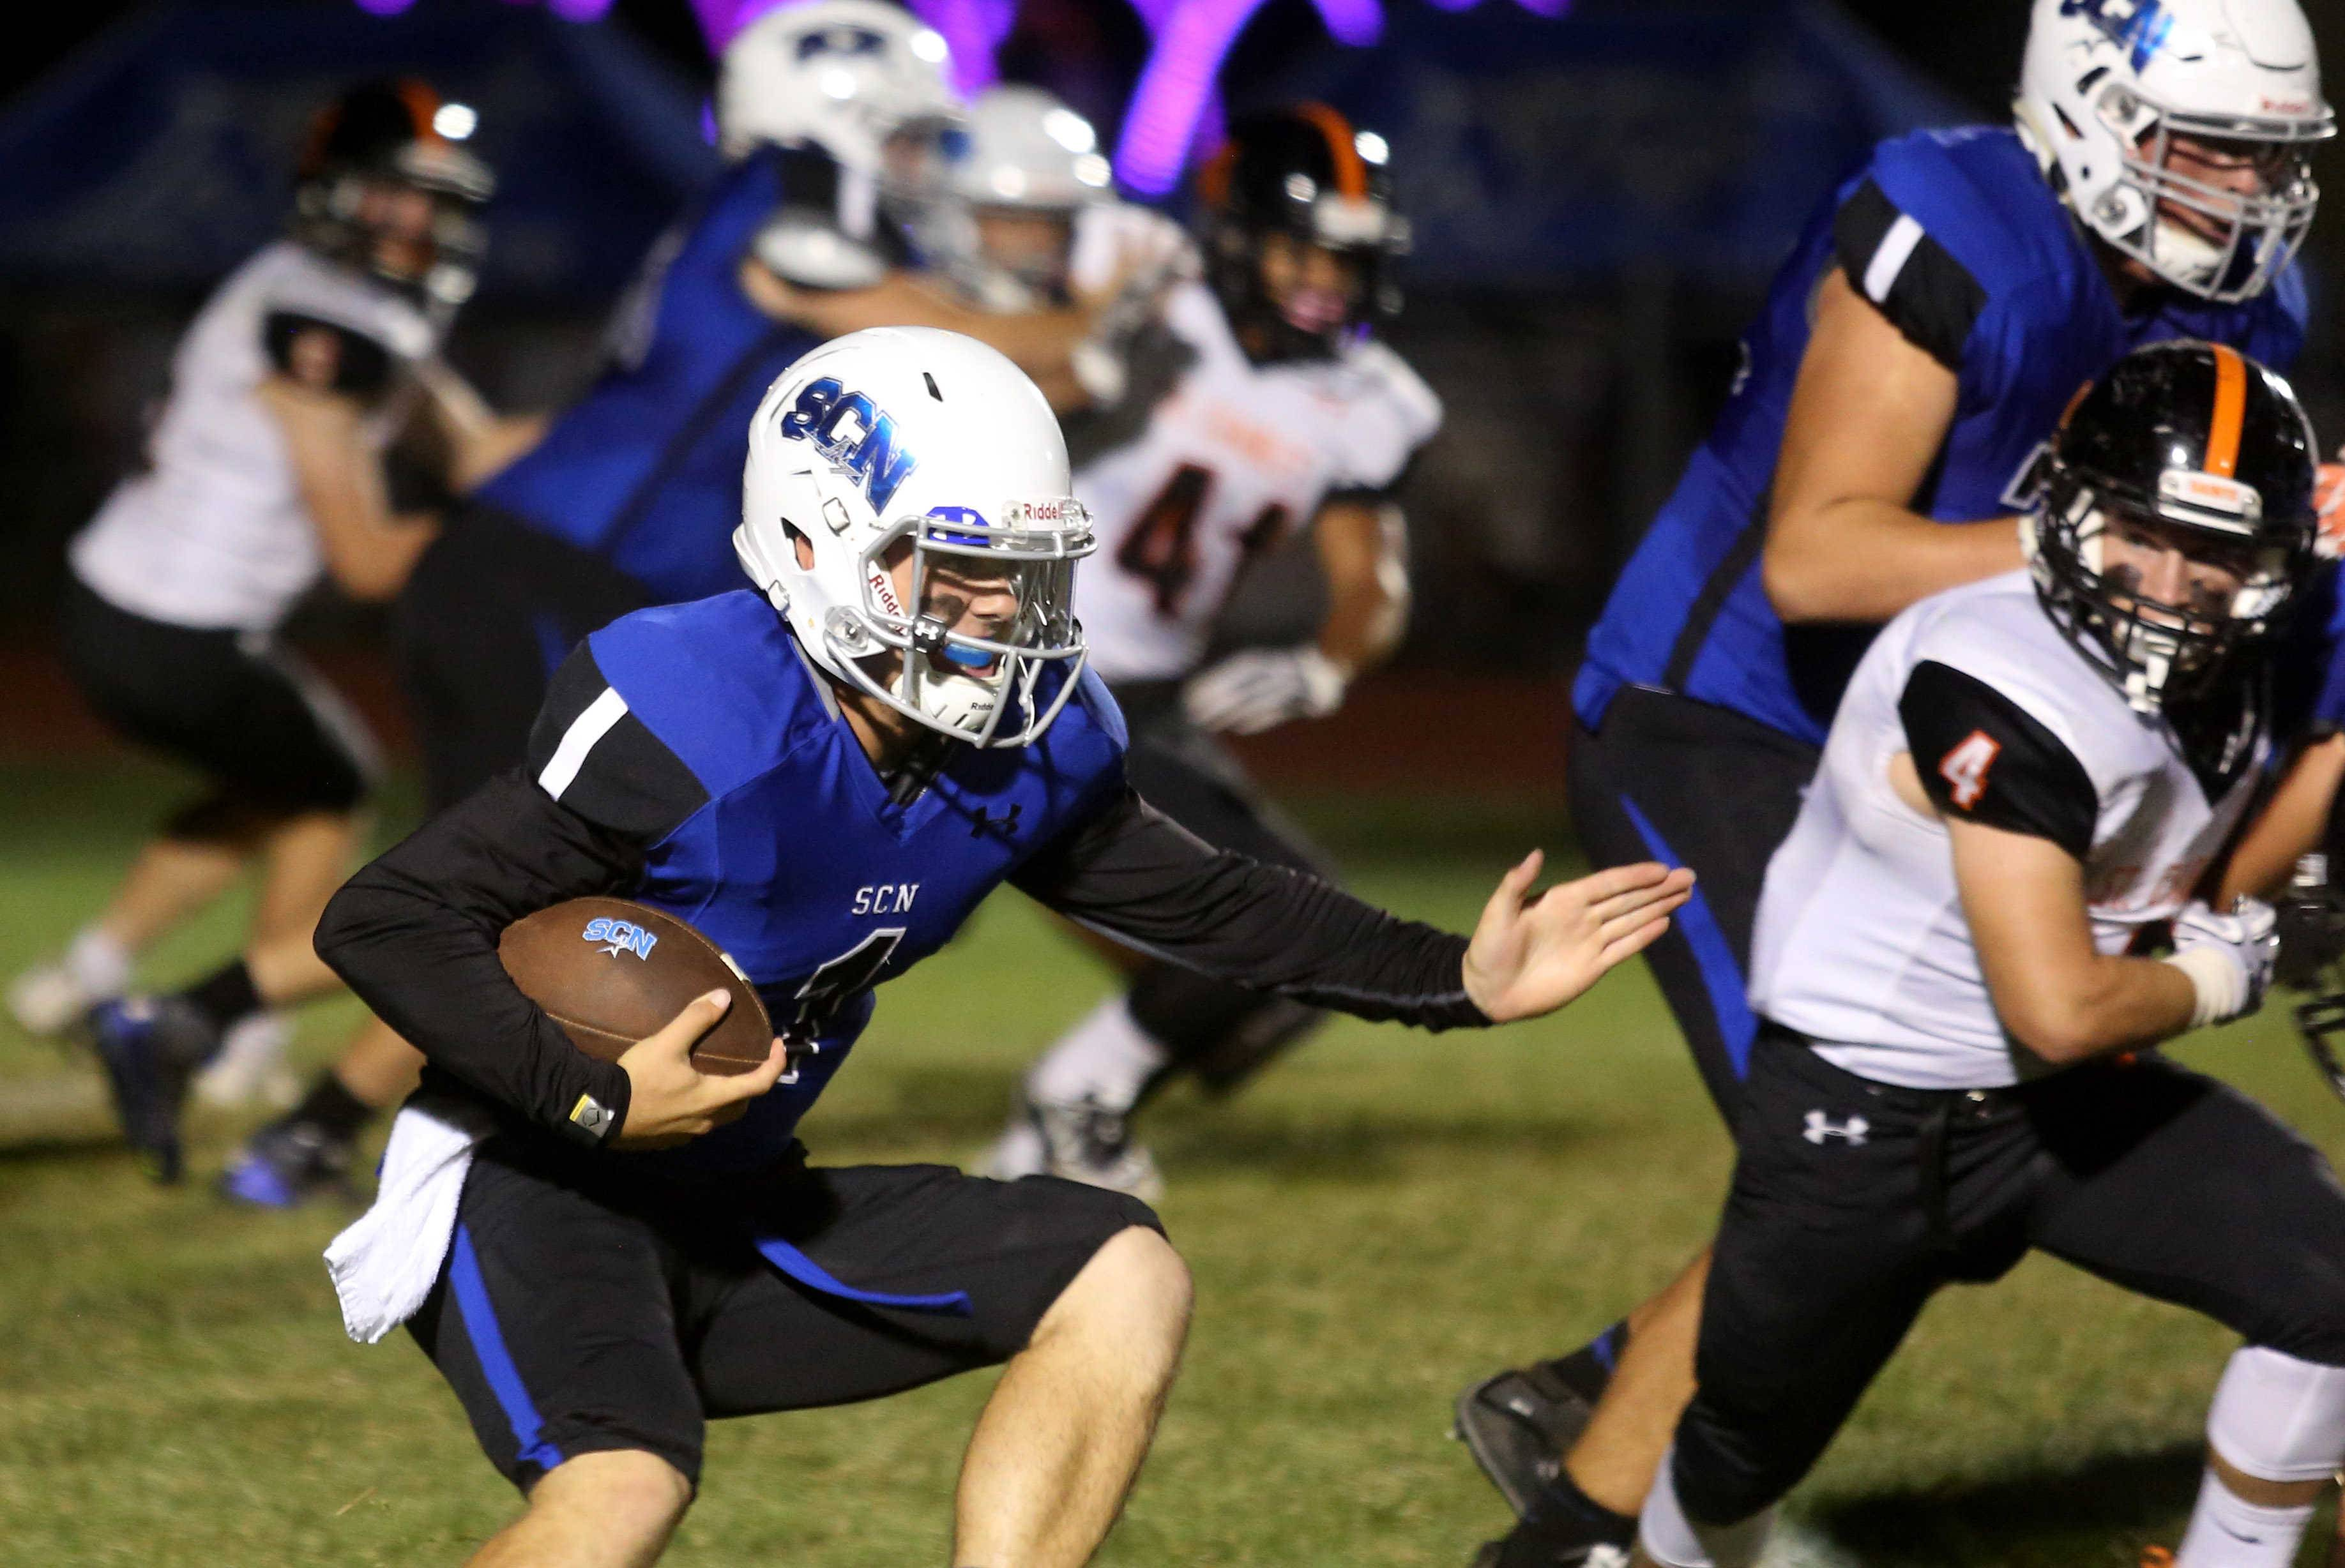 St. Charles North quarterback Zach Mettetal runs the ball during the Crosstown Classic football game at St. Charles North Friday night.